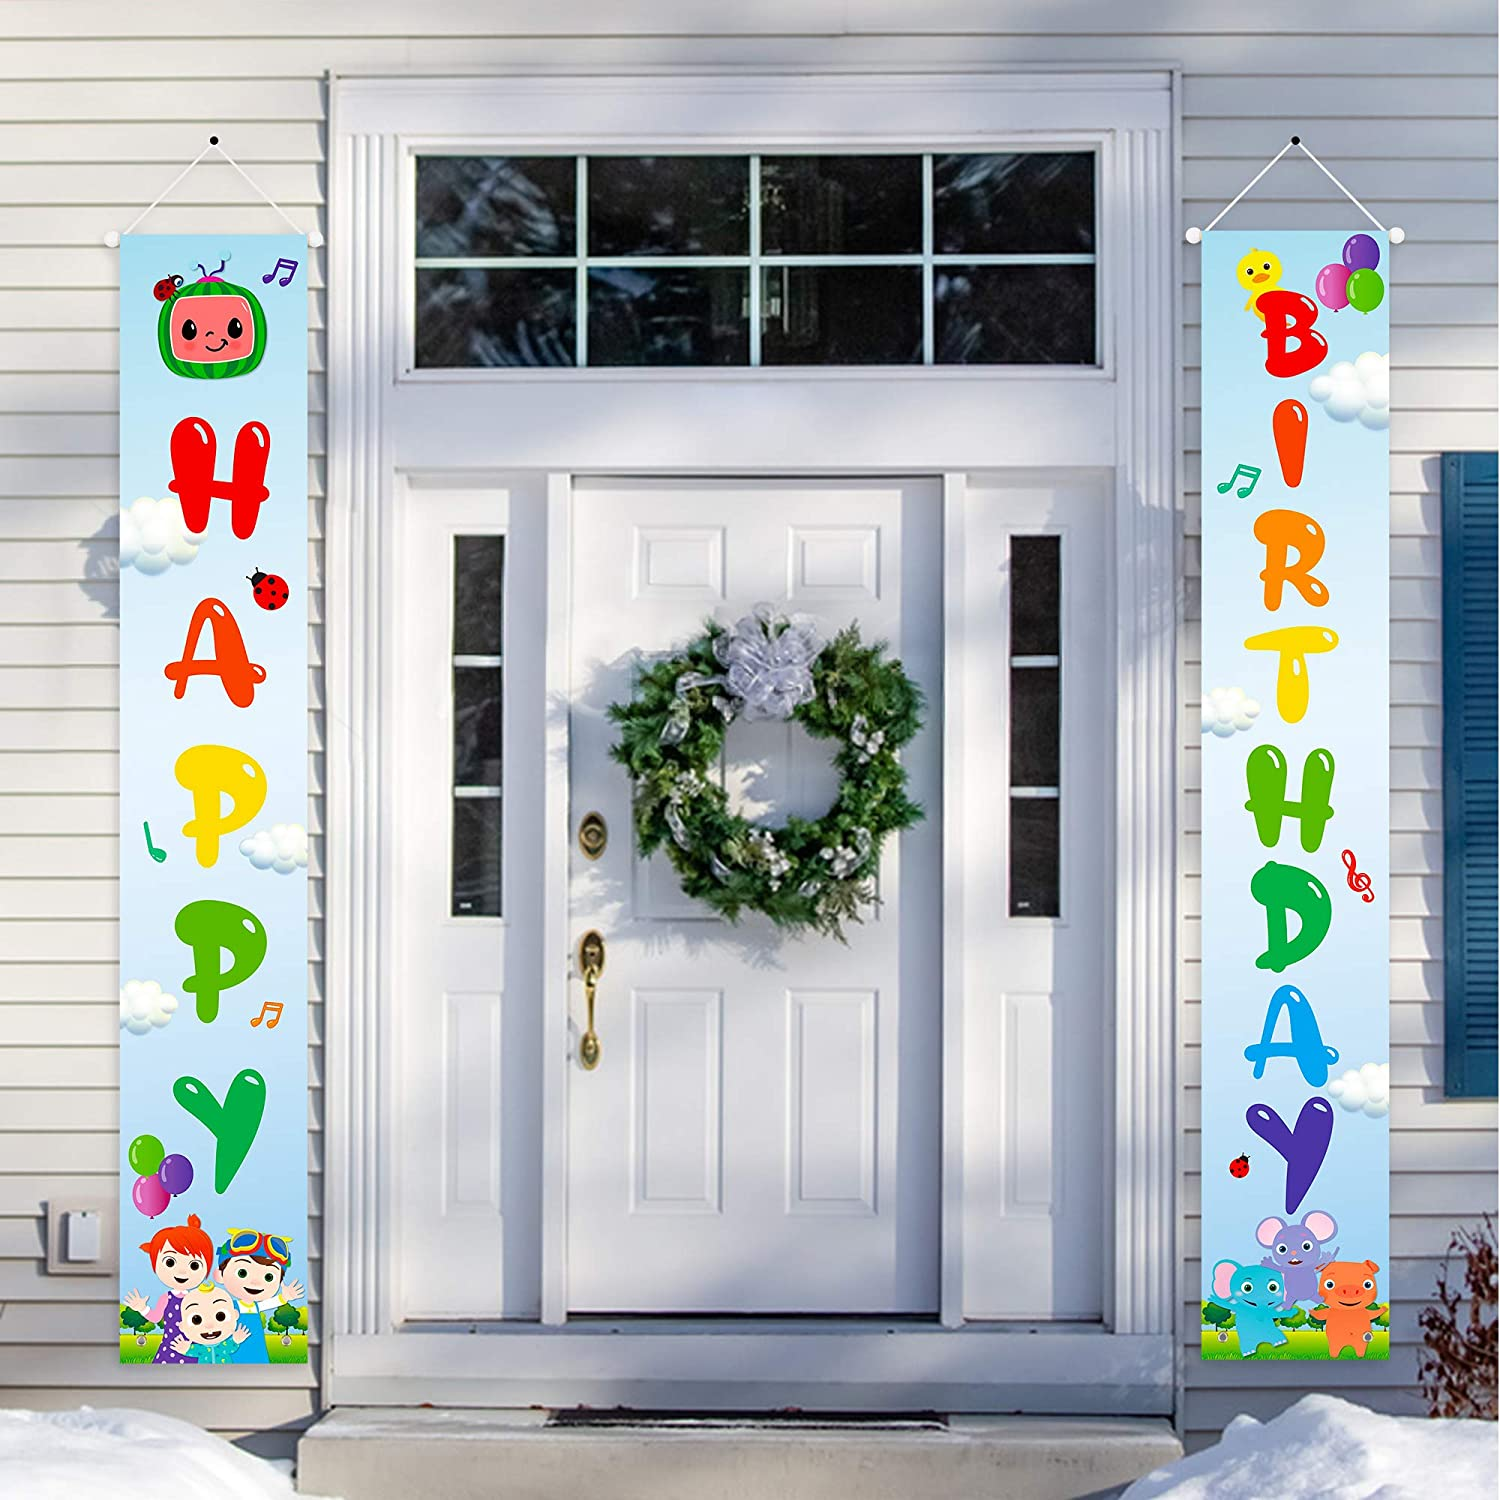 Haooryx JJ Melon Happy Birthday Porch Sign Theme Party Signs Banner Decoration, Indoor Outdoor Yard Hanging Welcome Sign Wall Decor Photo Booth Prop for Kids Birthday Party Baby Shower Favor Supplie